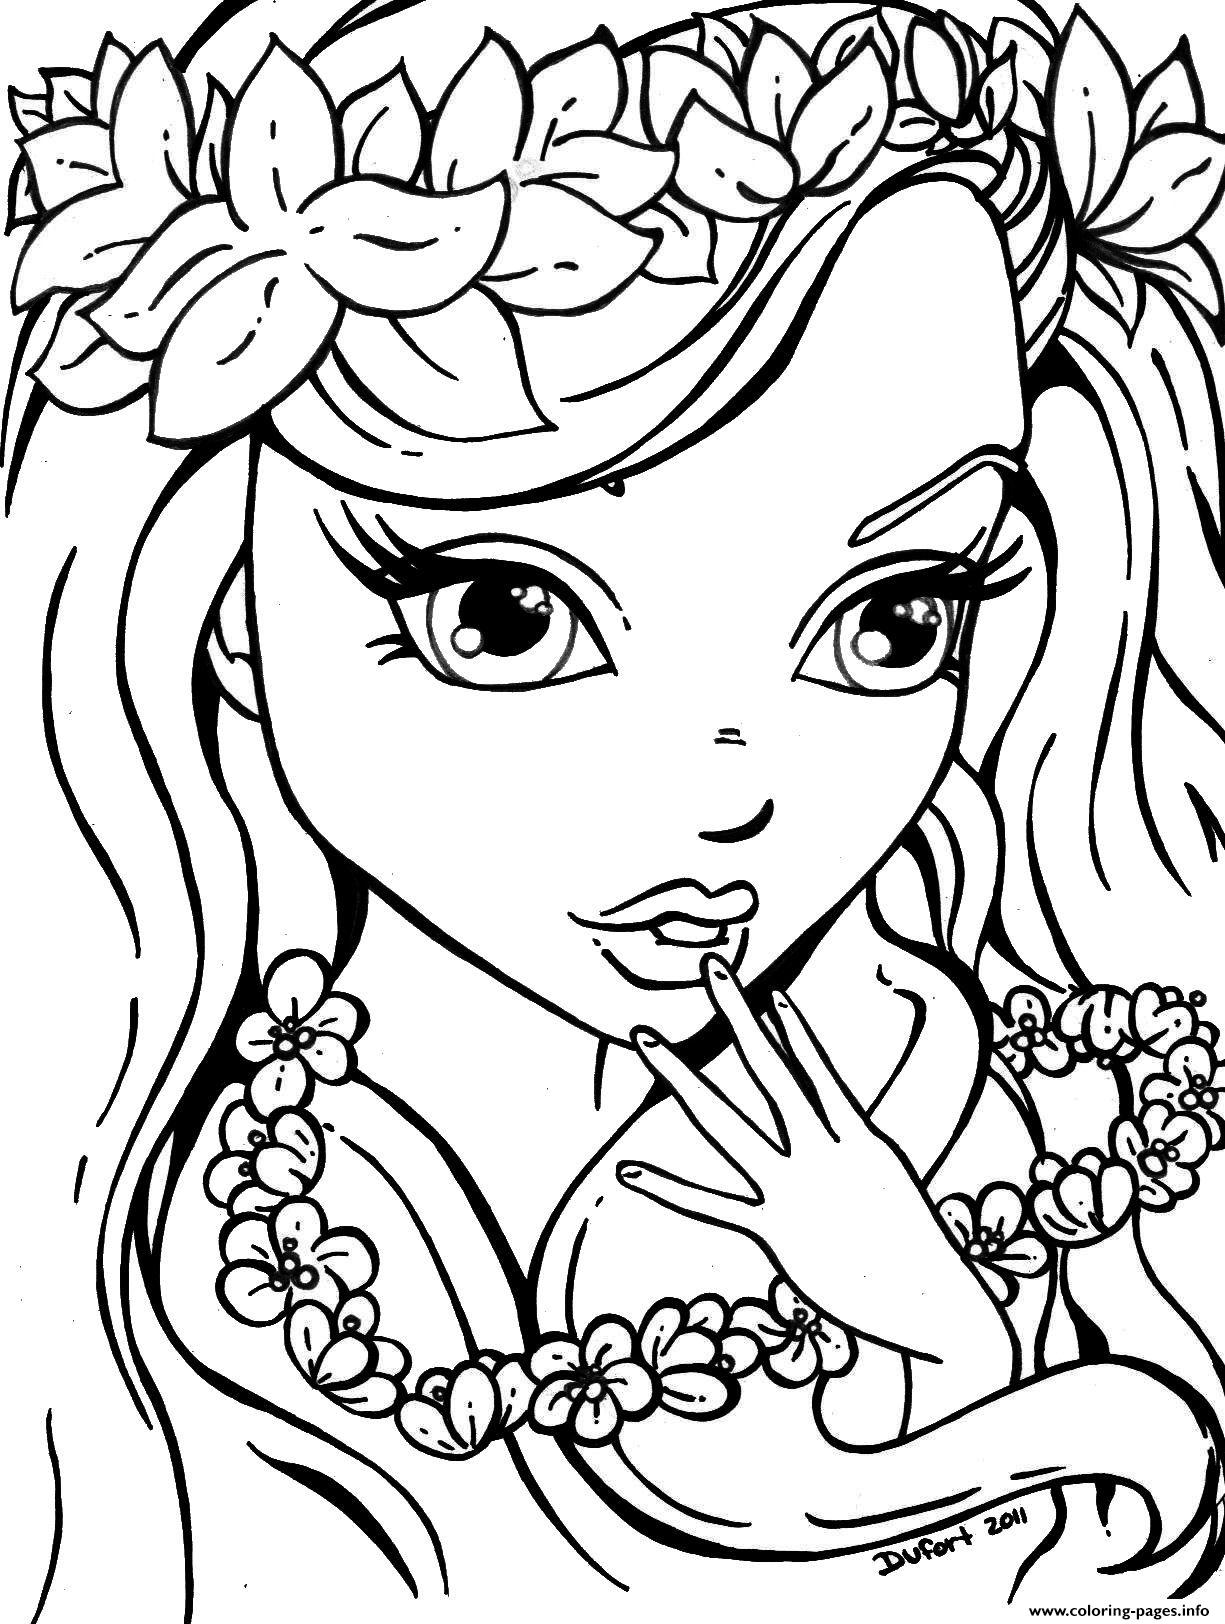 coloring pictures for teenagers coloring pages for teens best coloring pages for kids for teenagers coloring pictures